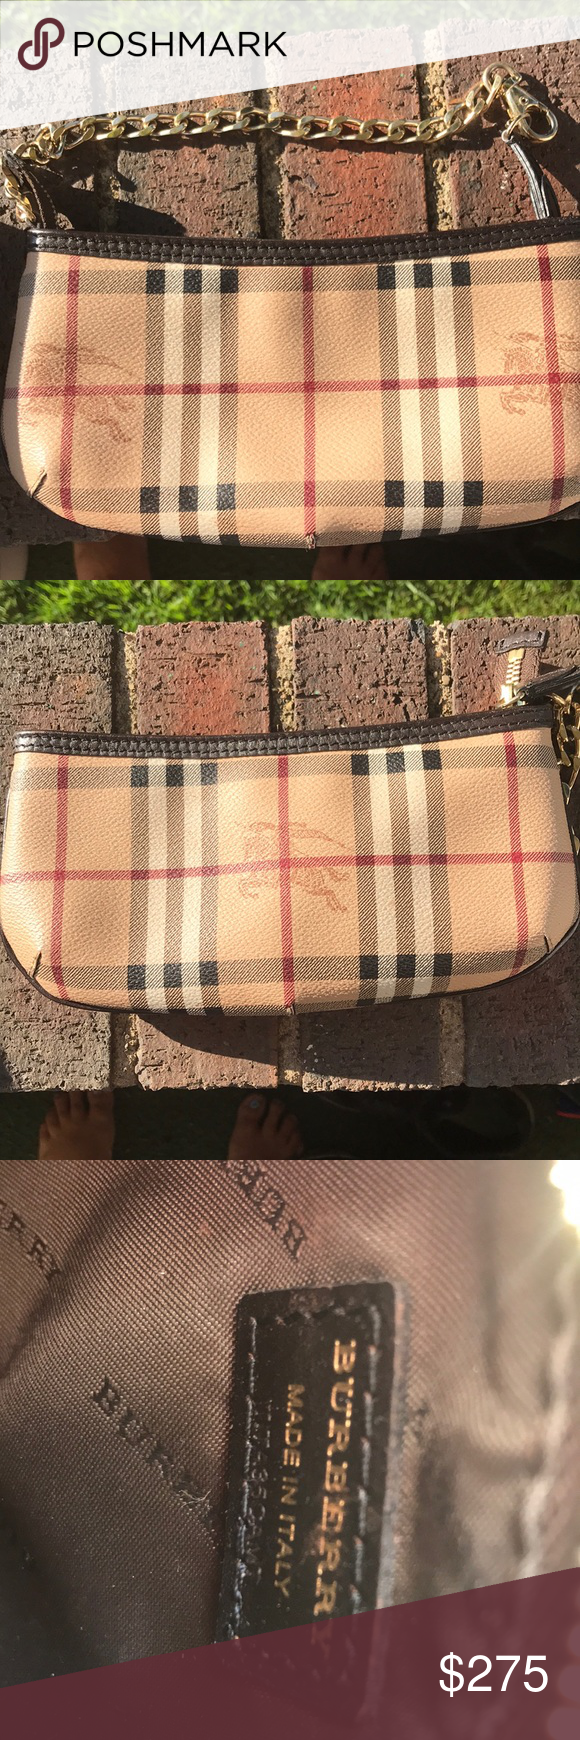 FINAL PRICE Authentic Gorgeous Burberry wristlet Burberry wristlet —with gold  metal detail includes protective bag 70763161f08cd